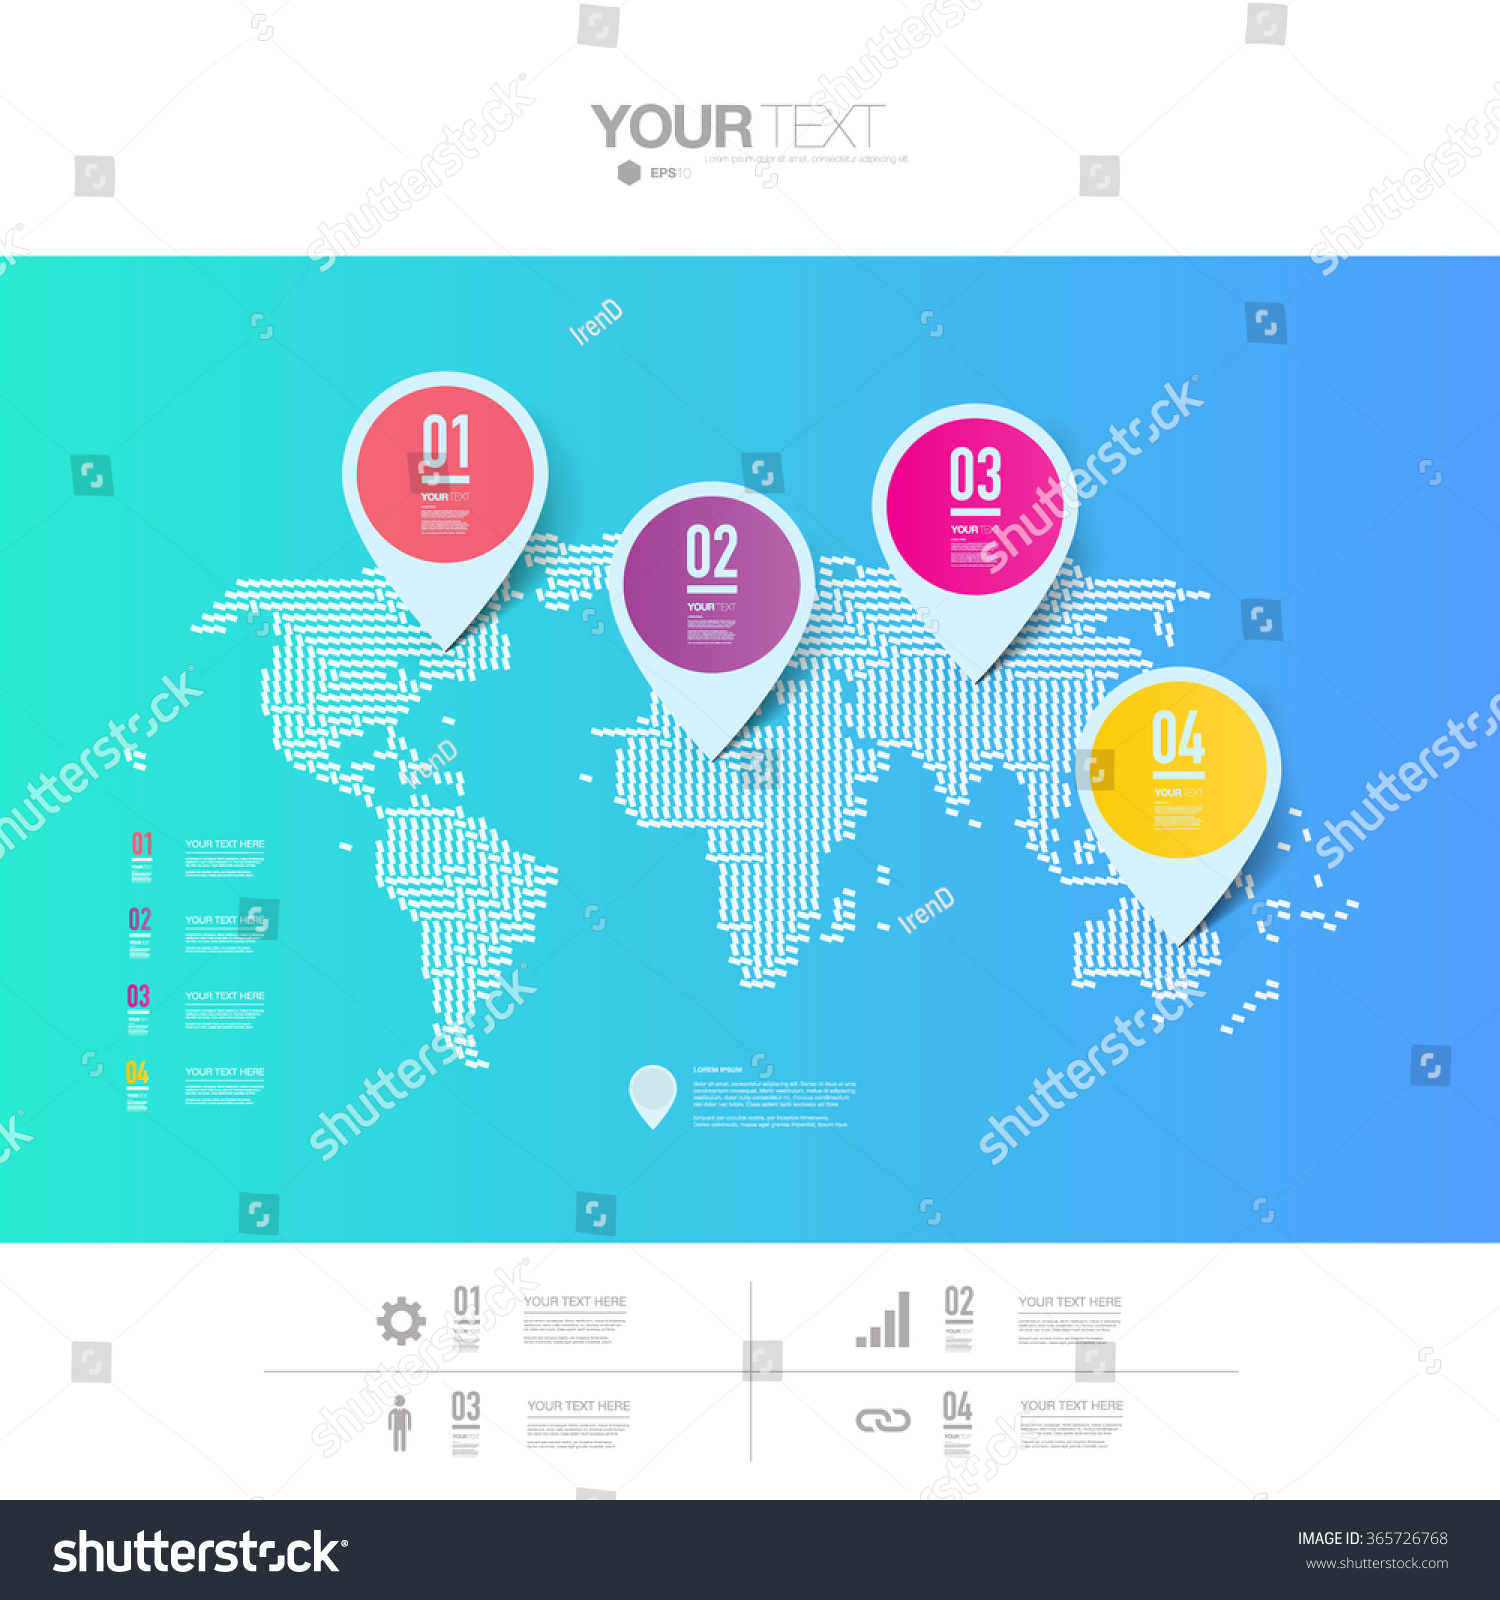 Abstract map pin icon design shadows stock vector 365726768 abstract map pin icon design with shadows on minimal world map background eps 10 stock vector gumiabroncs Gallery